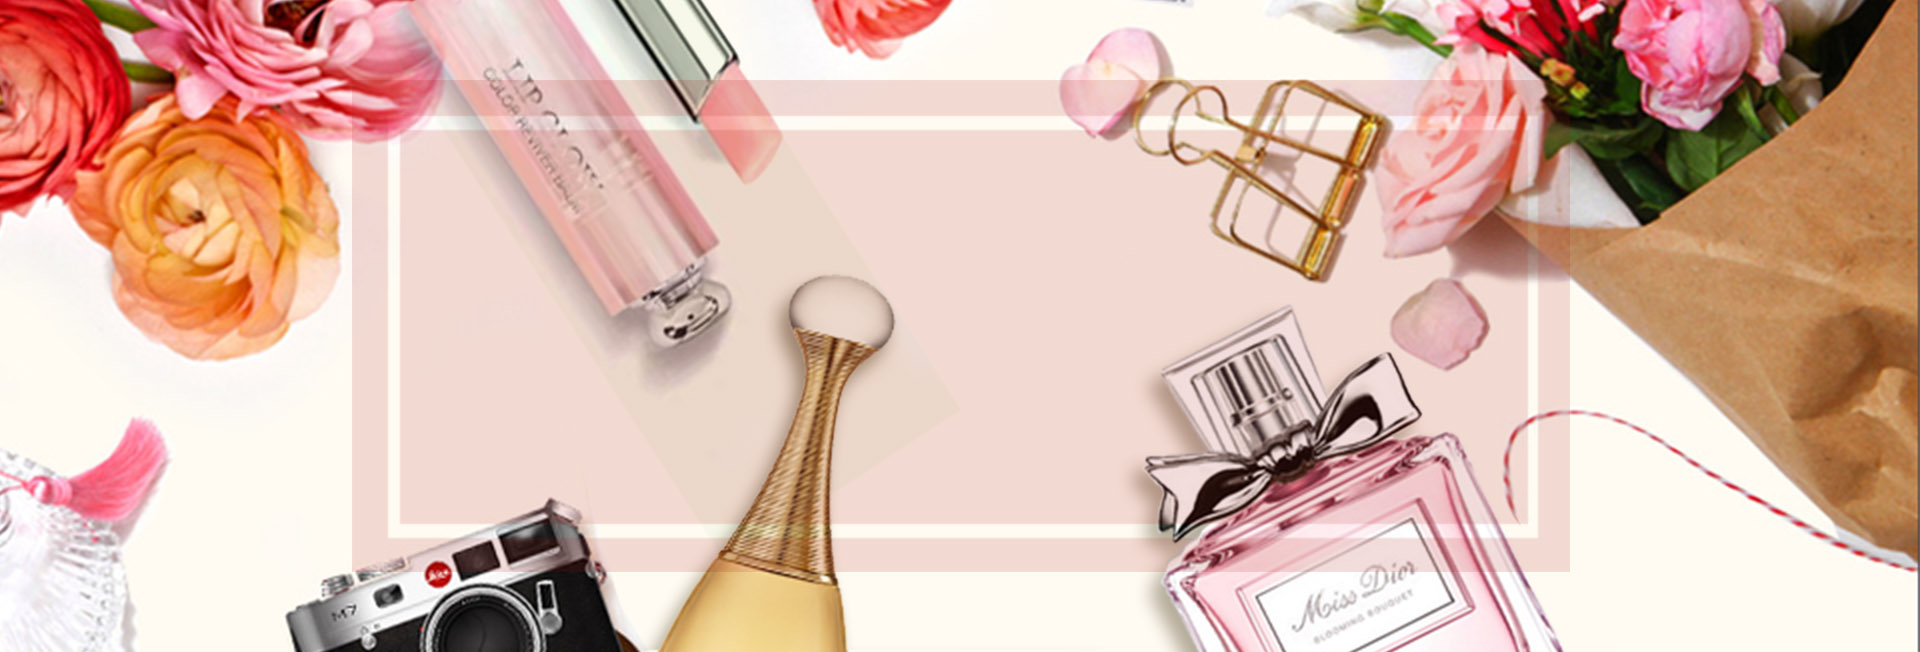 Posters Cosmetics Dior Cosmetic Luxury Background Image